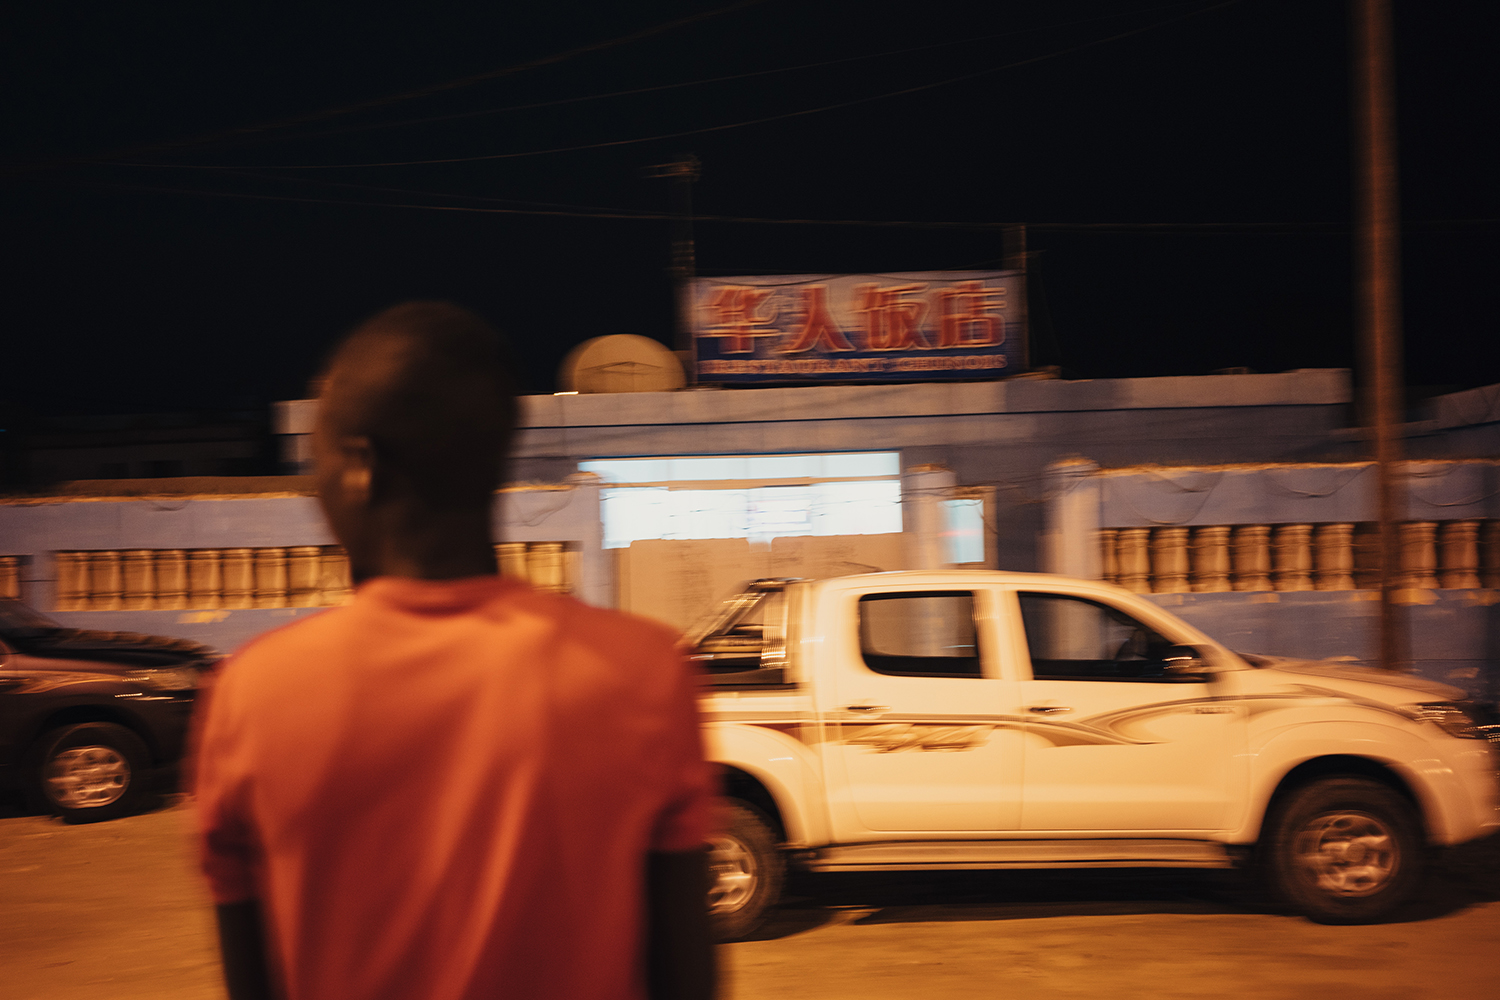 Employees of the China National Fisheries Corporation (CNFC) arrive in their cars at a Chinese restaurant in Nouadhibou, Mauritania, June 23, 2016. CNFC is one of the leading companies of China's distant-water fishing industry. In 1985, CNFC came to West Africa to enter the distant-water fishing industry and currently has business in Senegal, Mauritania, Guinea, and Guinea-Bissau, as well as elsewhere across the Pacific, Atlantic, and Indian Oceans.